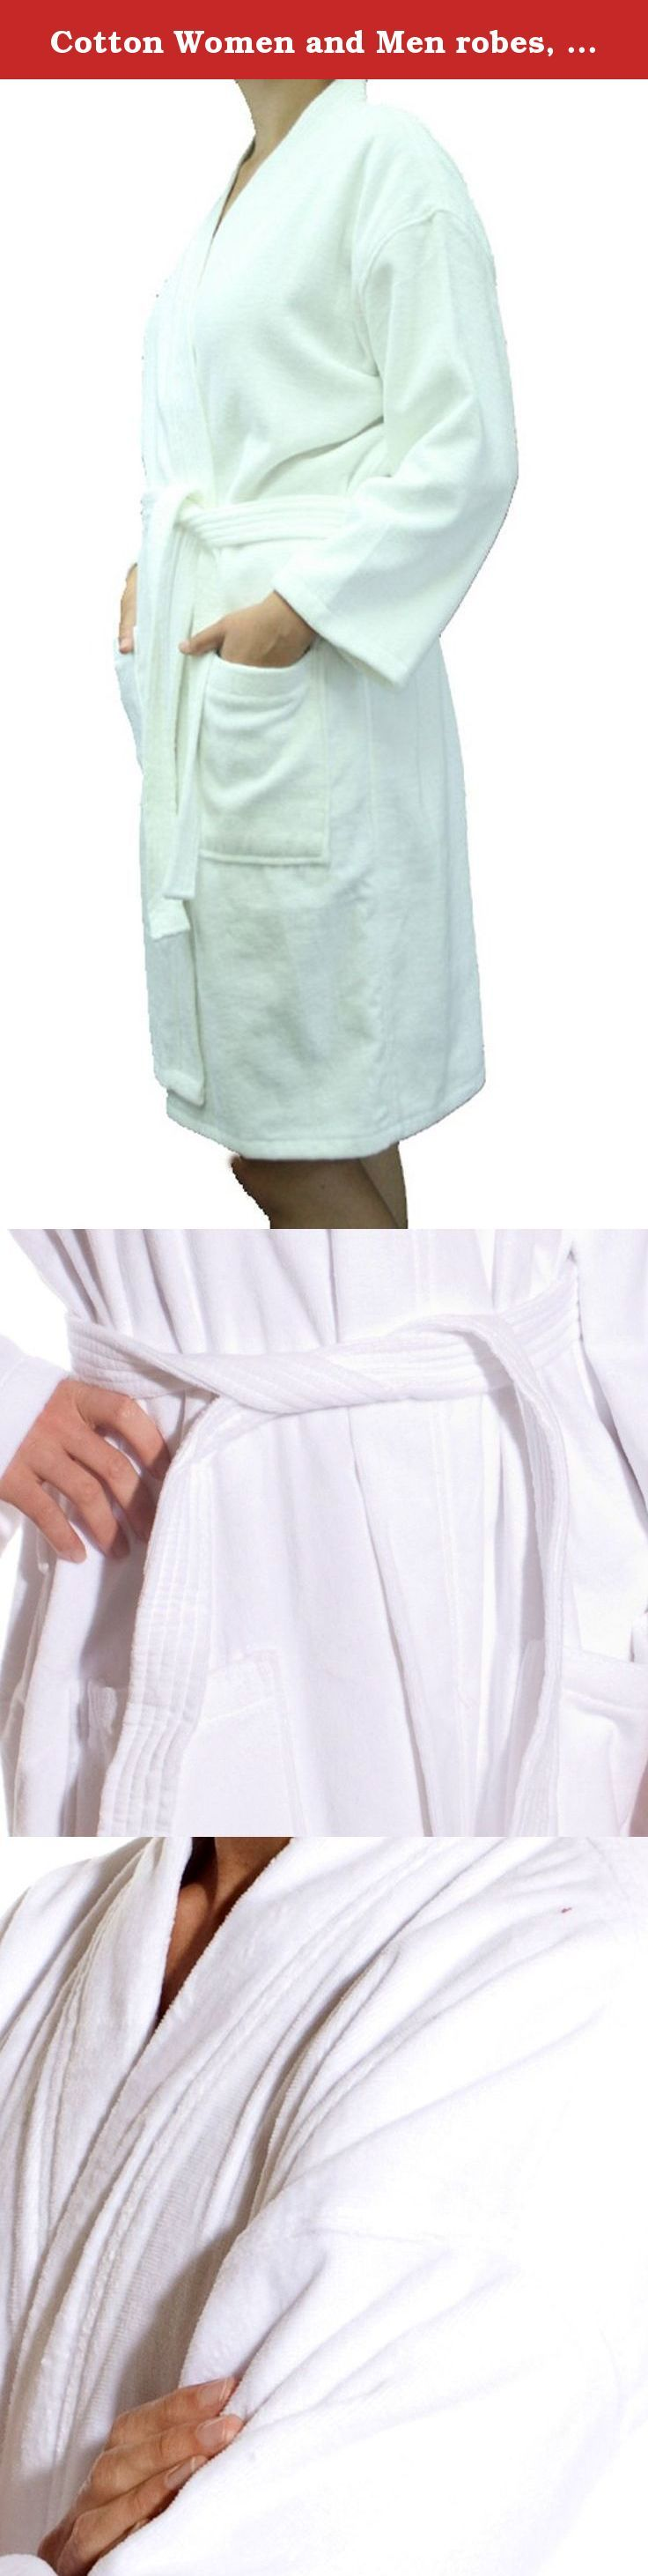 Cotton Women and Men robes, Velour Terry Kimono Adult Bathrobes, White Adult robes, Size S/M. Terry Kimono Robes have been woven using 100% Top Quality natural Cottons. The World's softest and the most absorbent cottons ever. Robe made of terrycloth inside and velour cut terry cotton on the outside. These top quality bath robes are used by most of the first class hotels and spas for their valued customers. Kimono Style Spa Robes, Hotel Robes and bathrobes are designed for maximum comfort…